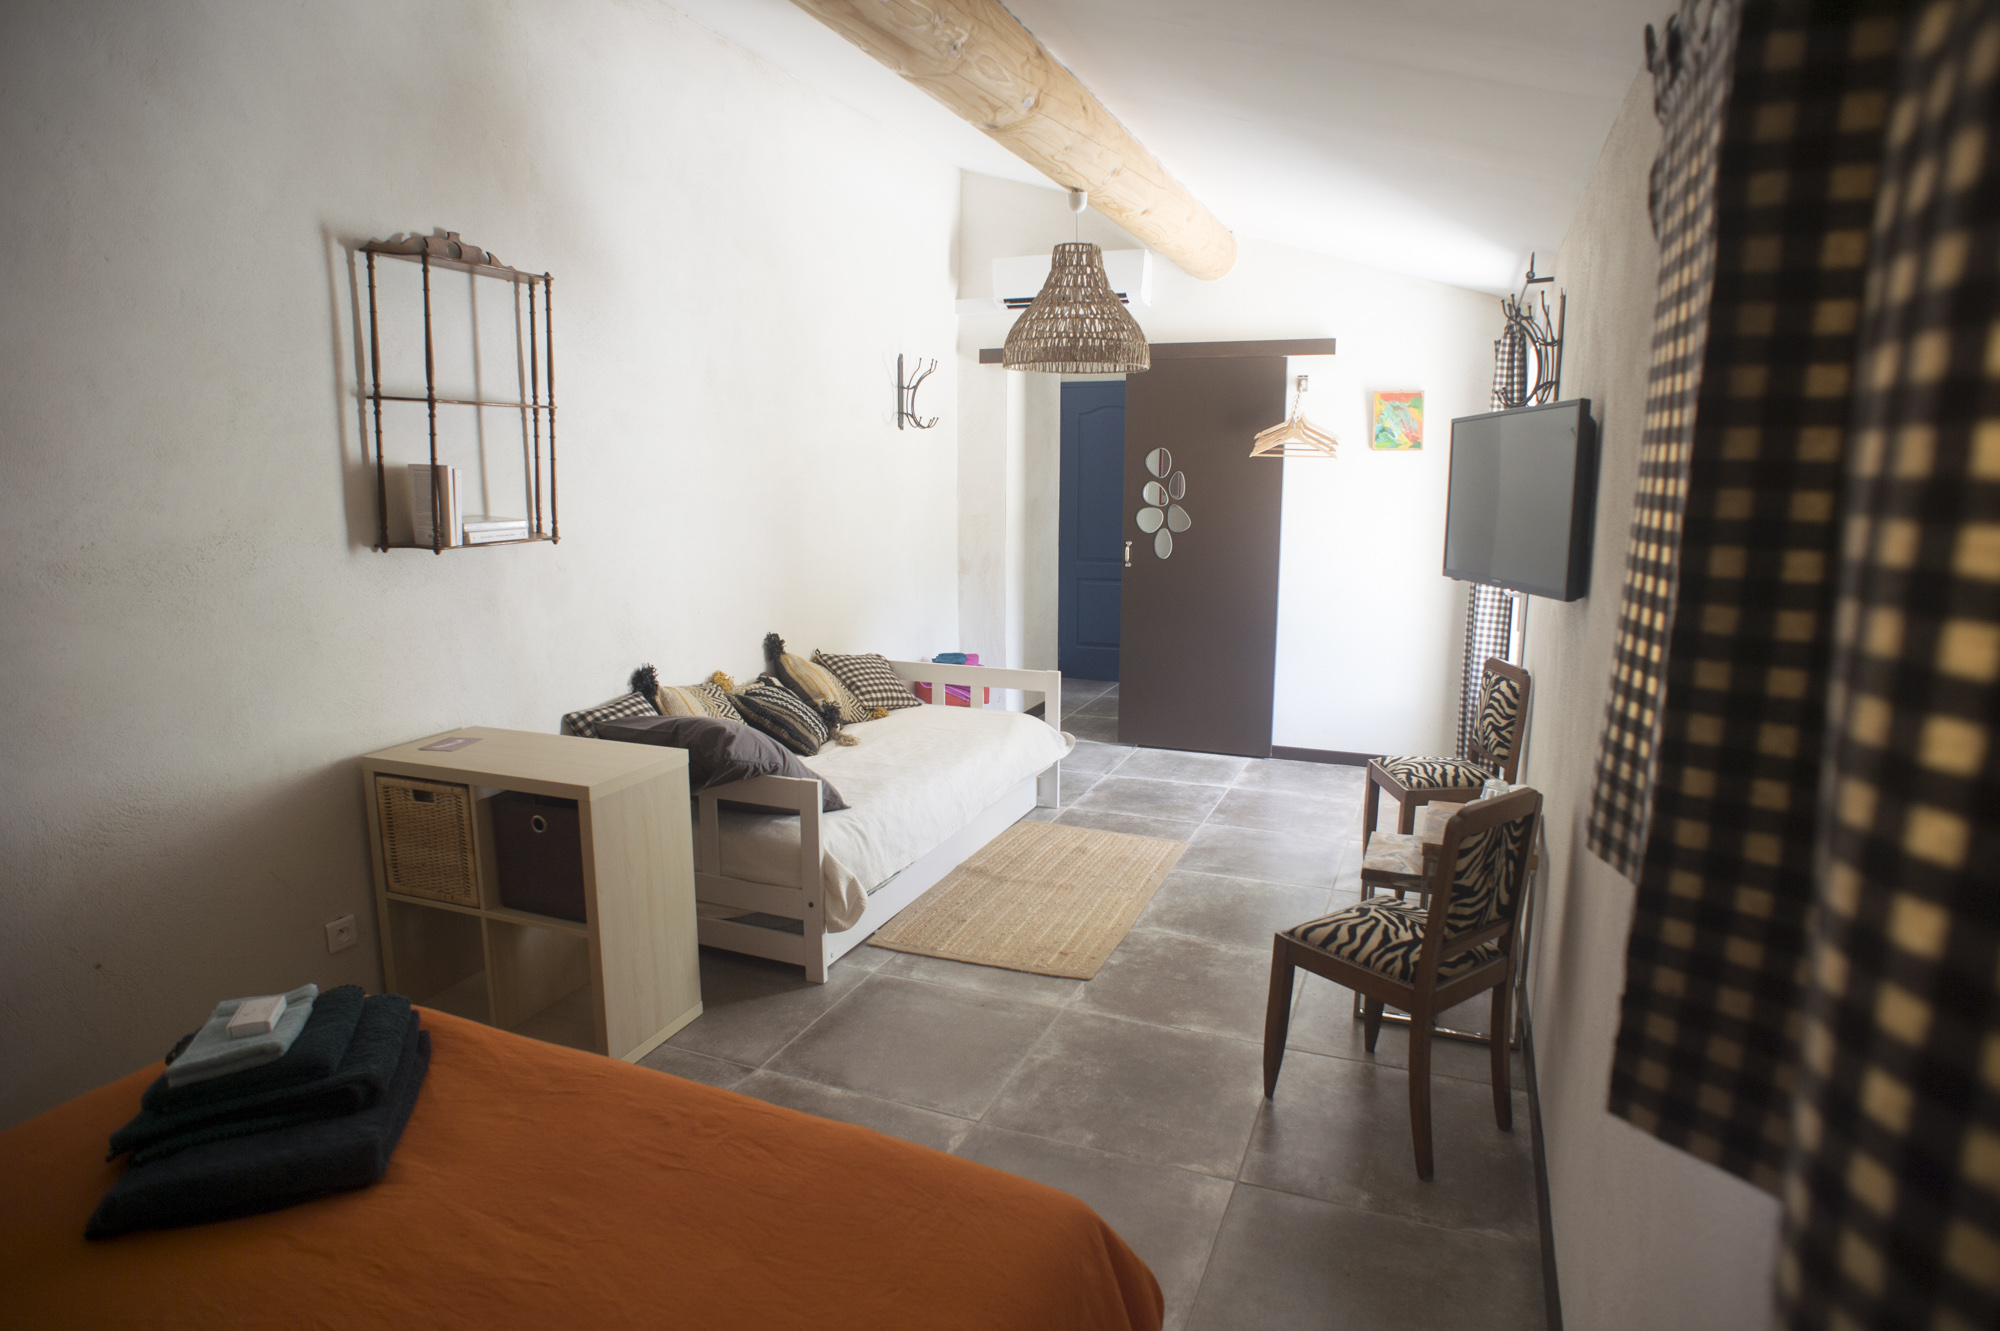 Chambres D Hotes Camargue Latest Chambres Duhtes With Chambres D